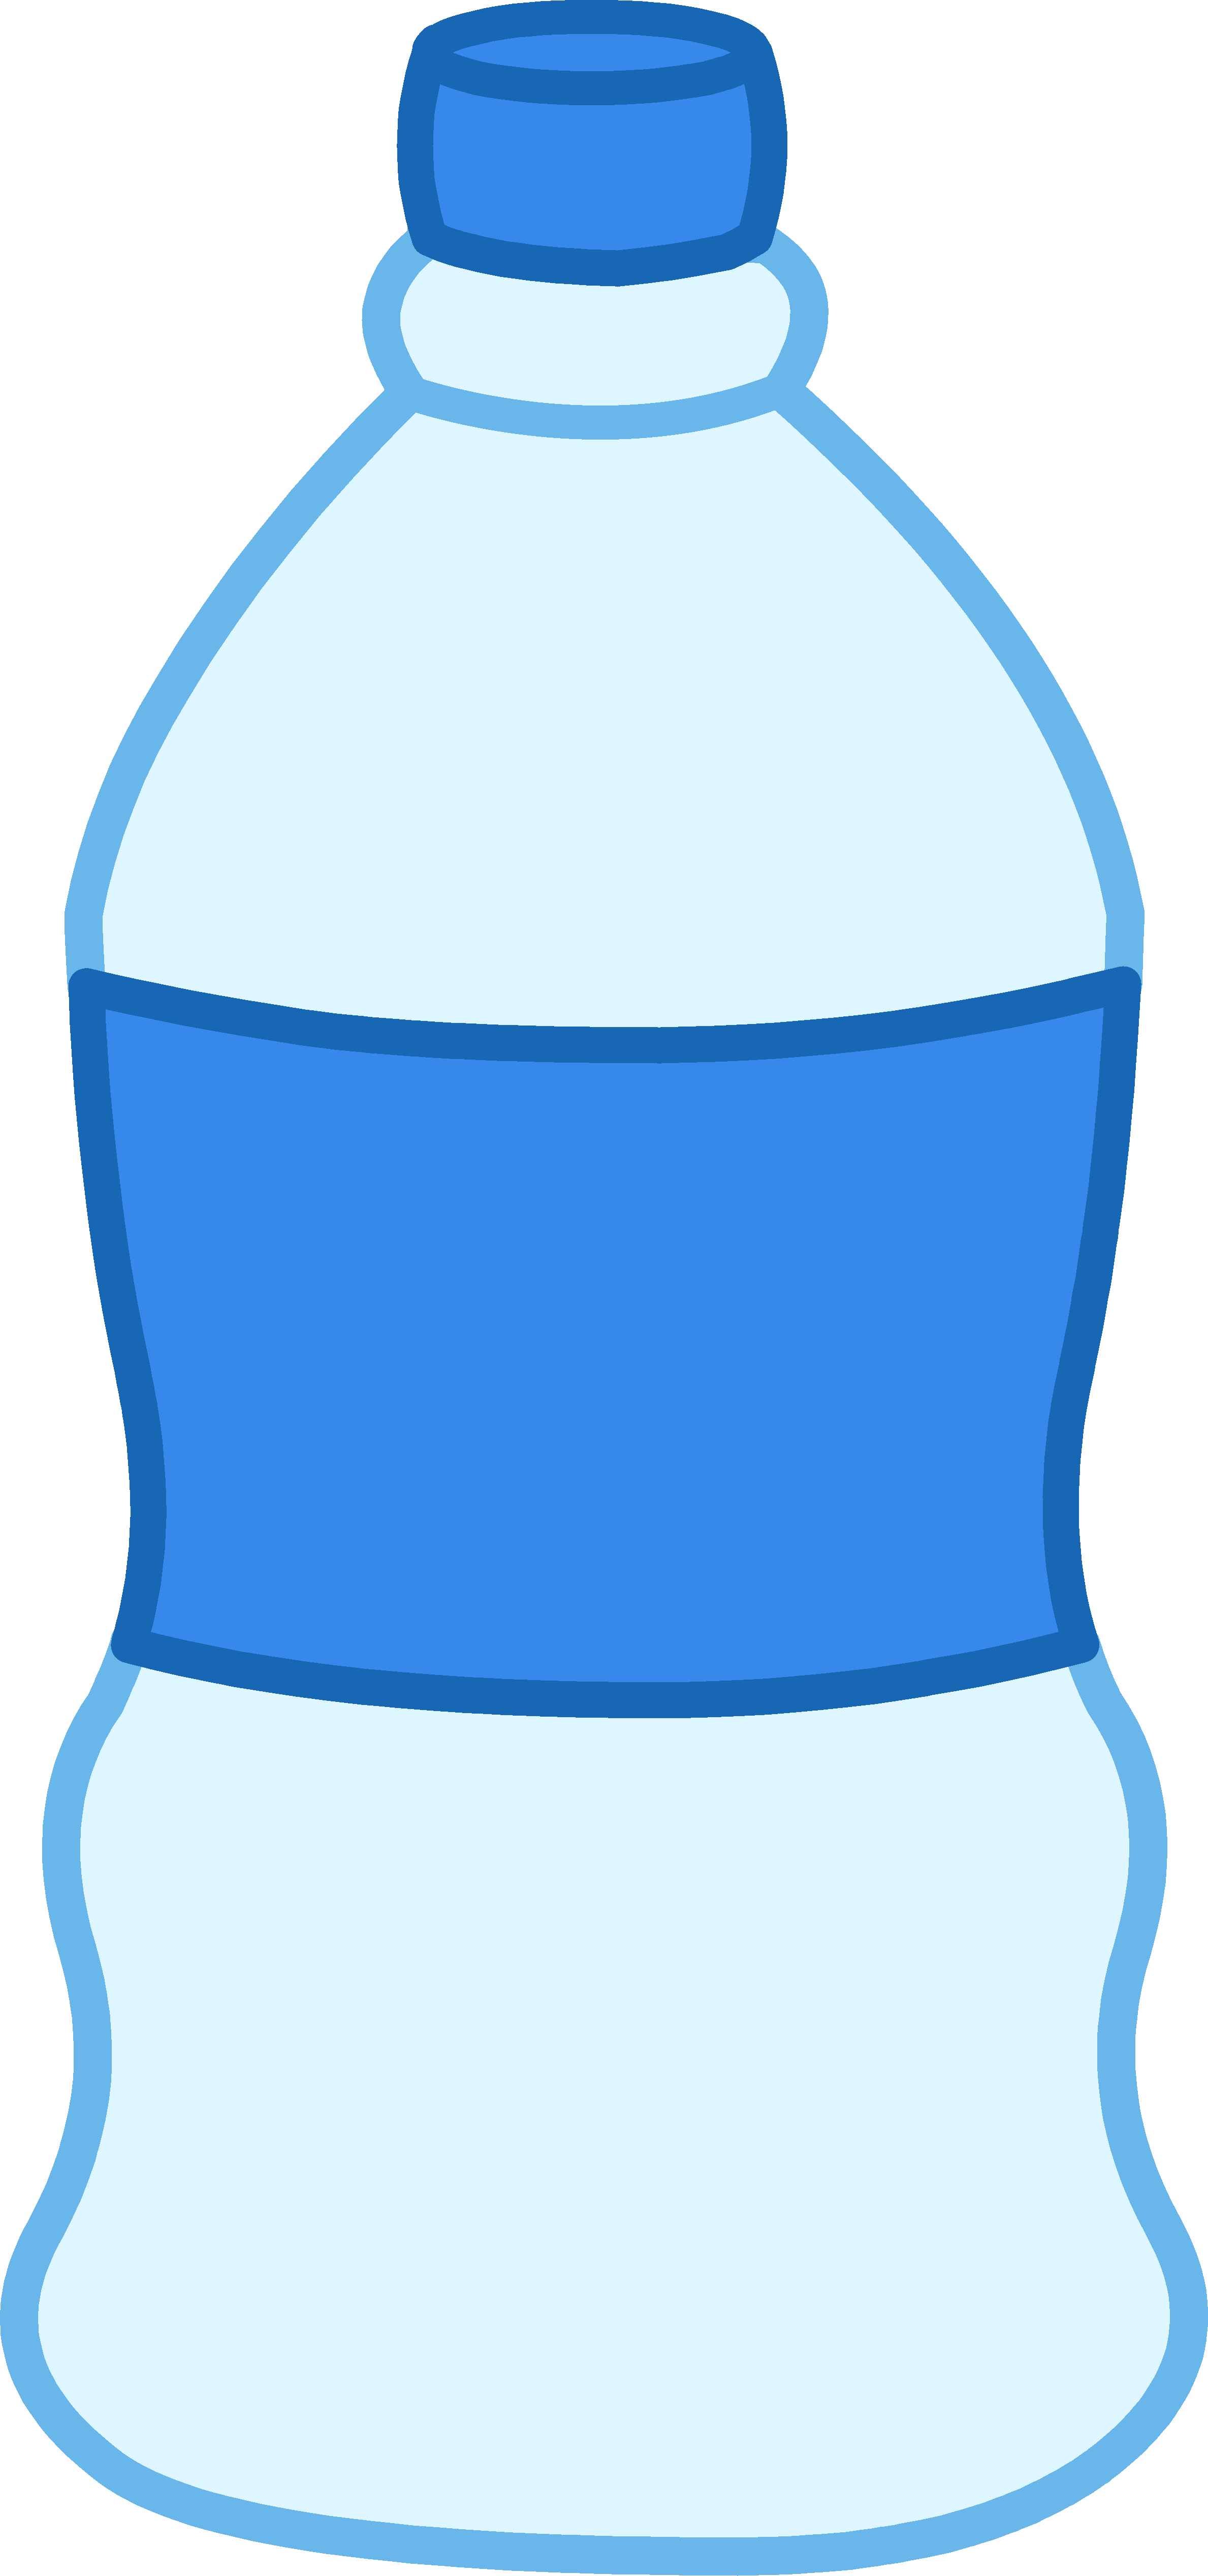 Cartoon Water Bottle Clipart Free Clip Art Images